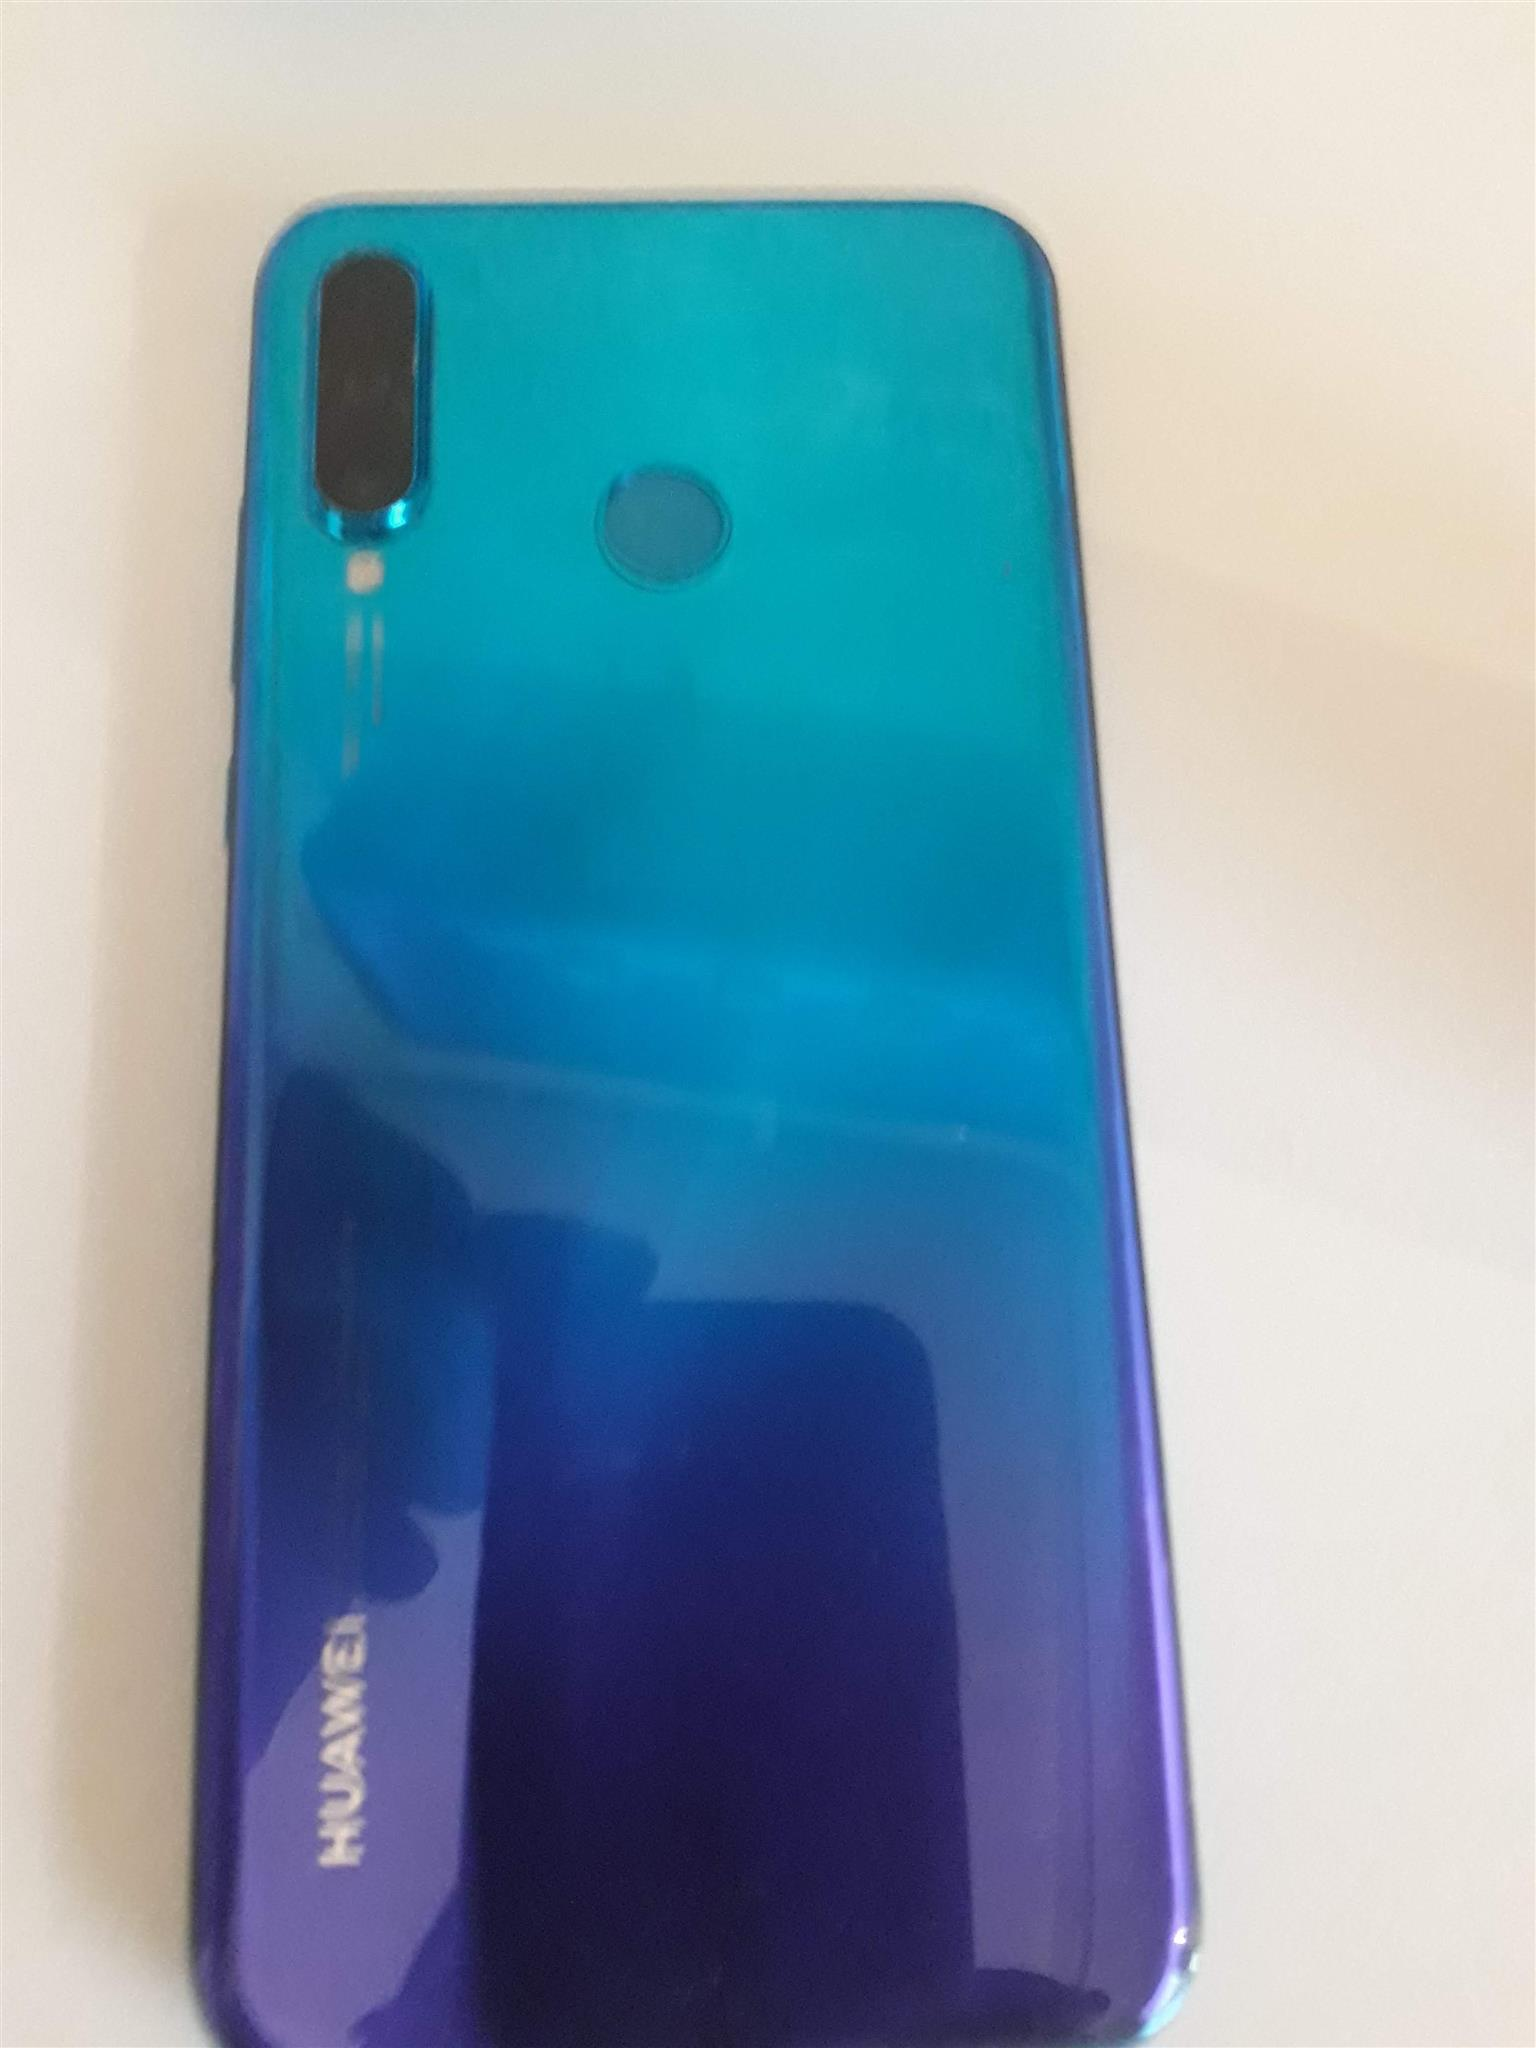 2019 Huawei P30 lite 13 months old. As good as new with no scratches or cracks. Peacock blue, dual